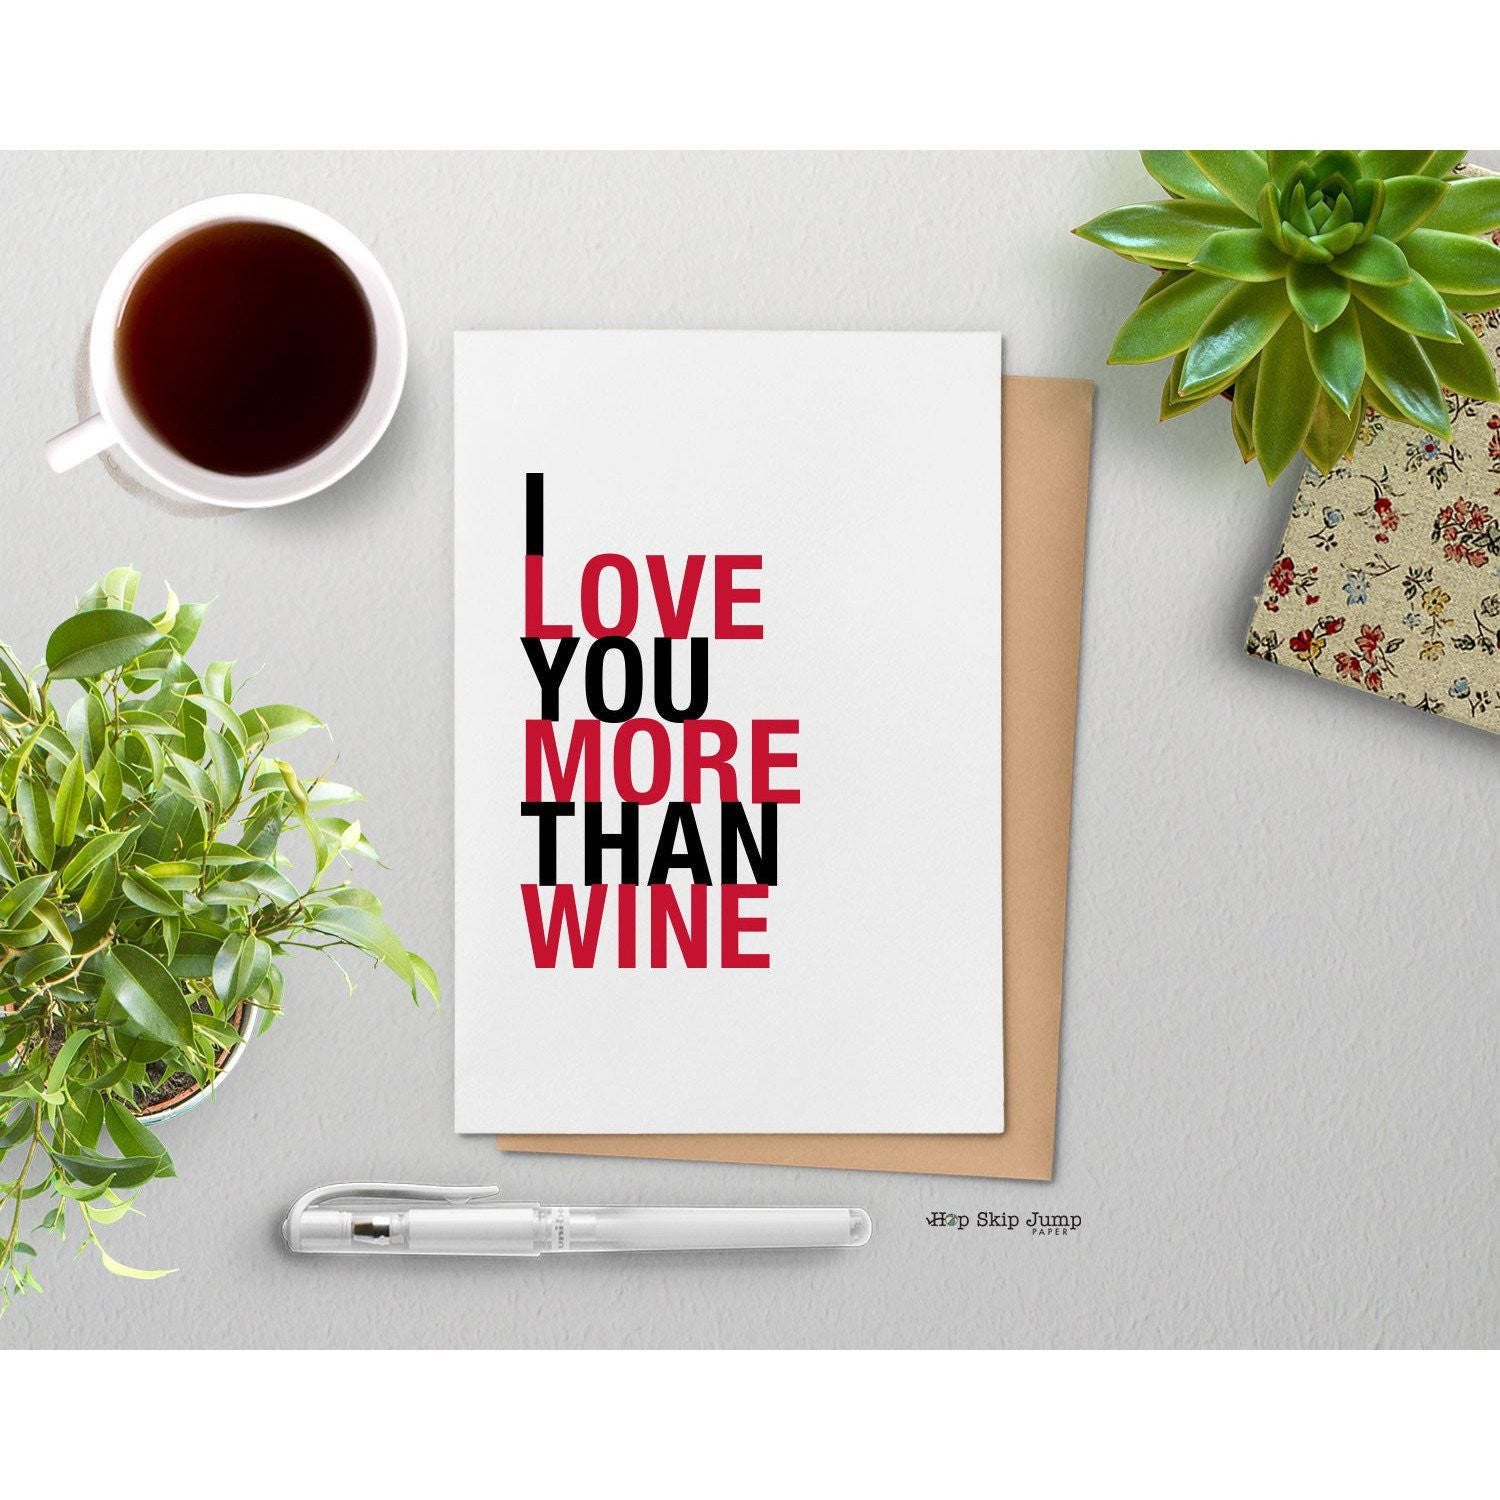 I Love You More Than Wine greeting card  - Shop Online